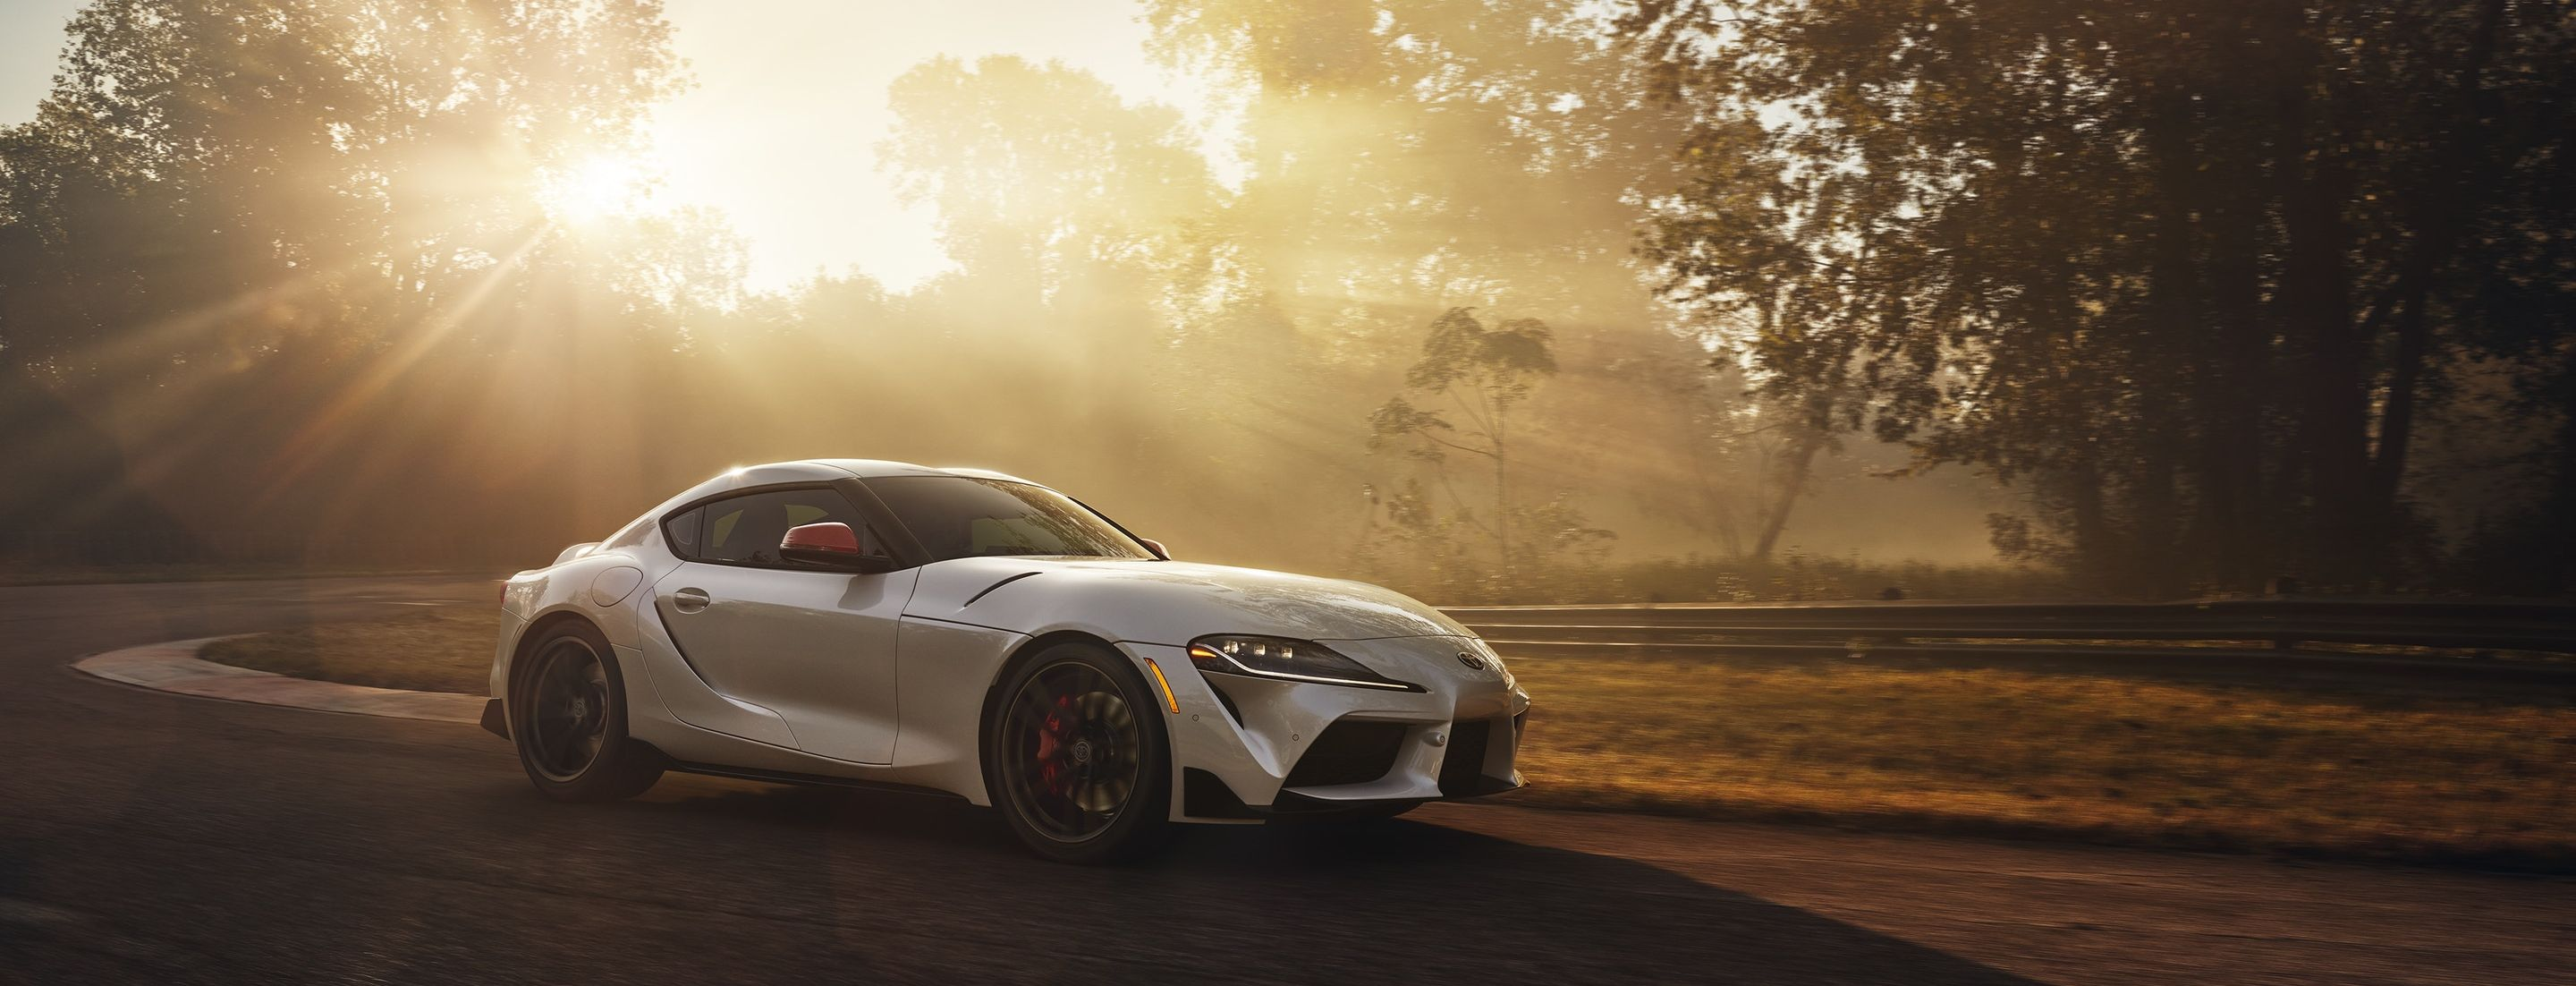 2020 Toyota Supra for Sale near Blue Springs, MO, 64013